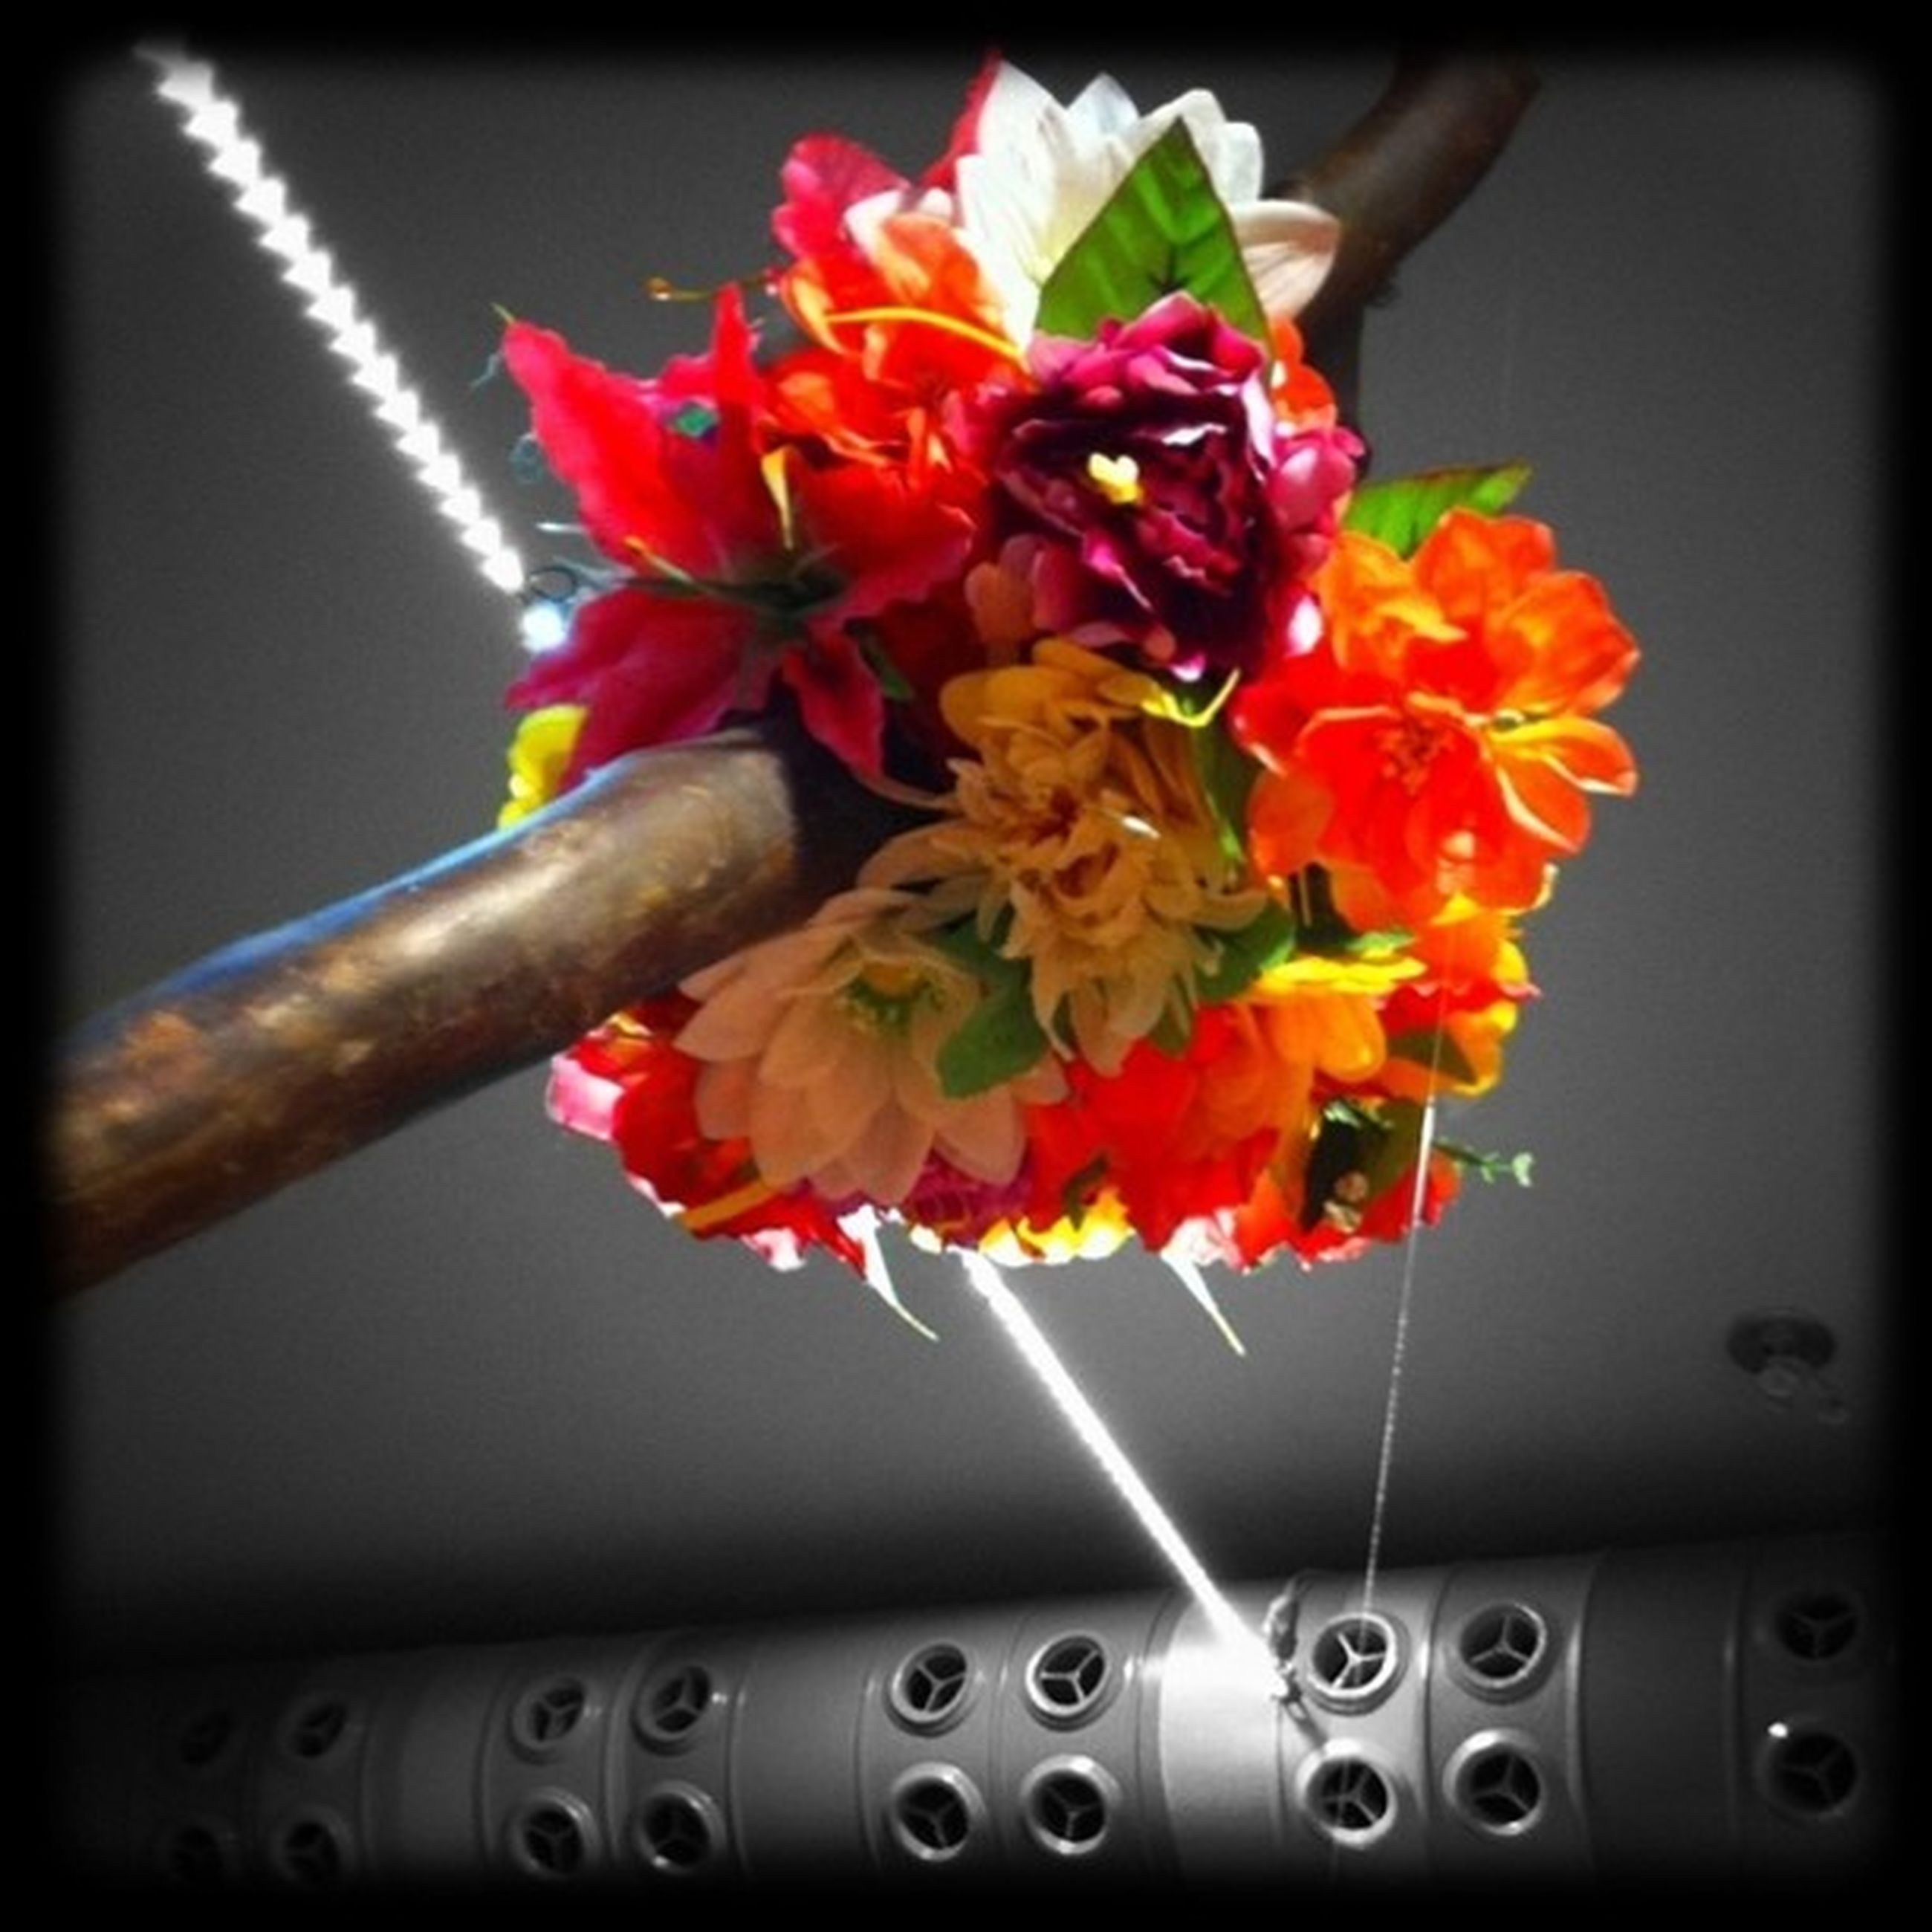 transfer print, auto post production filter, flower, close-up, red, petal, indoors, fragility, flower head, focus on foreground, freshness, no people, beauty in nature, selective focus, hanging, metal, nature, growth, decoration, stem